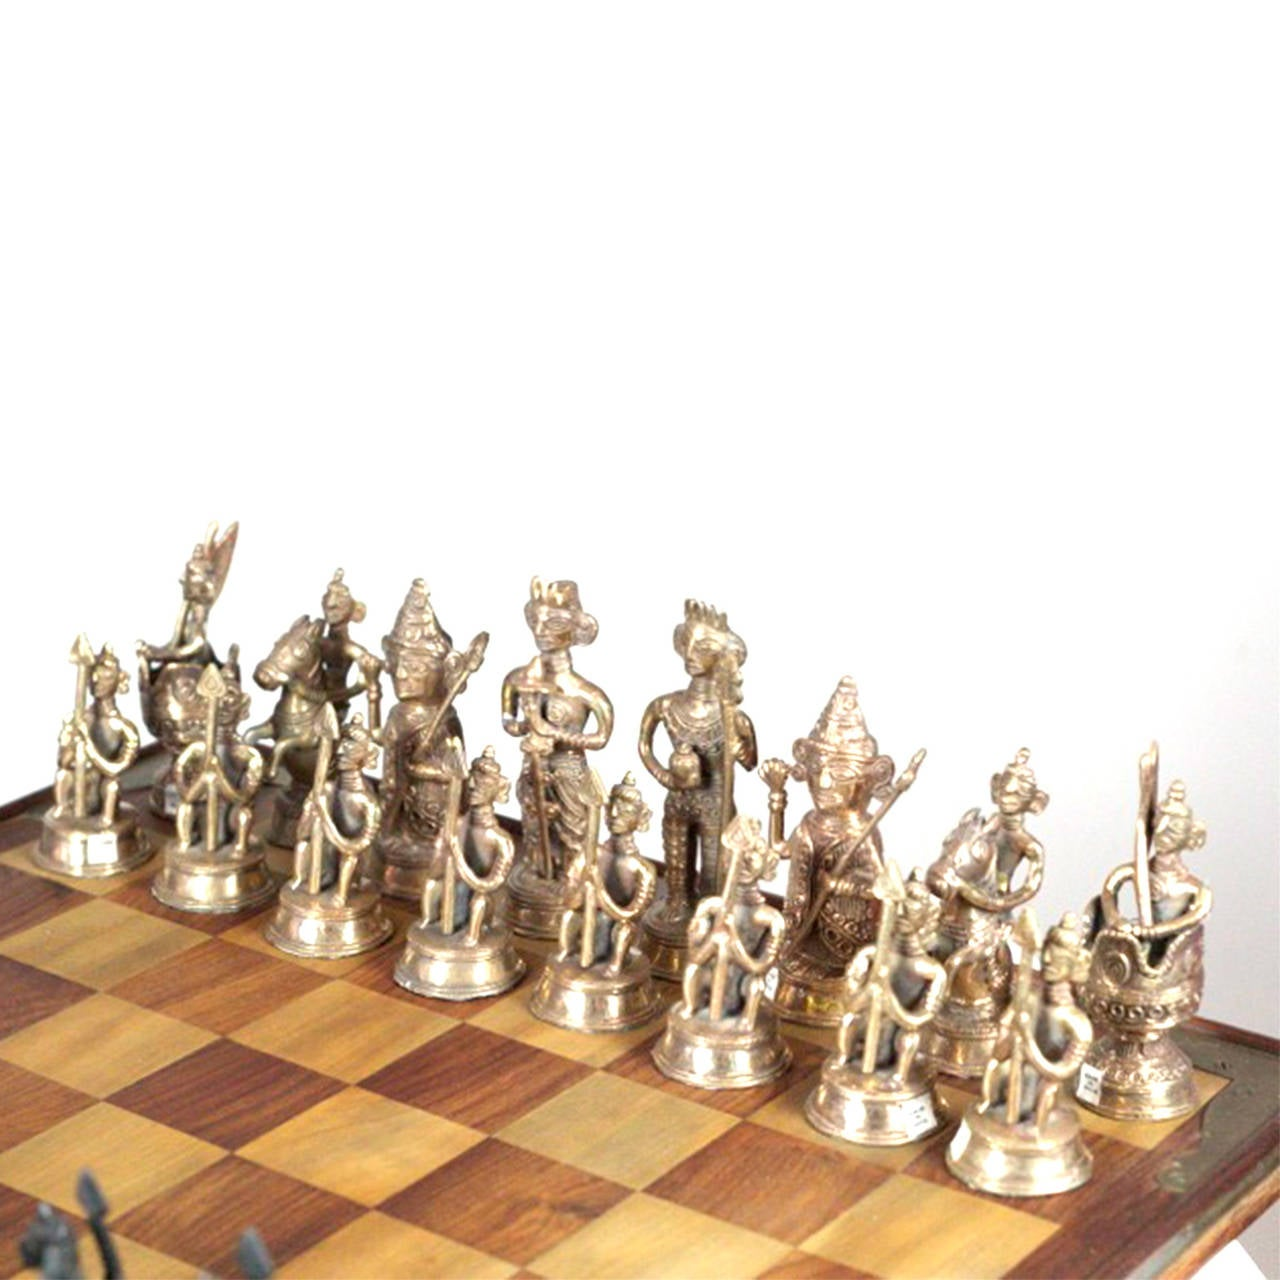 Midcentury Indian Chess Set With Solid Brass Chess Pieces